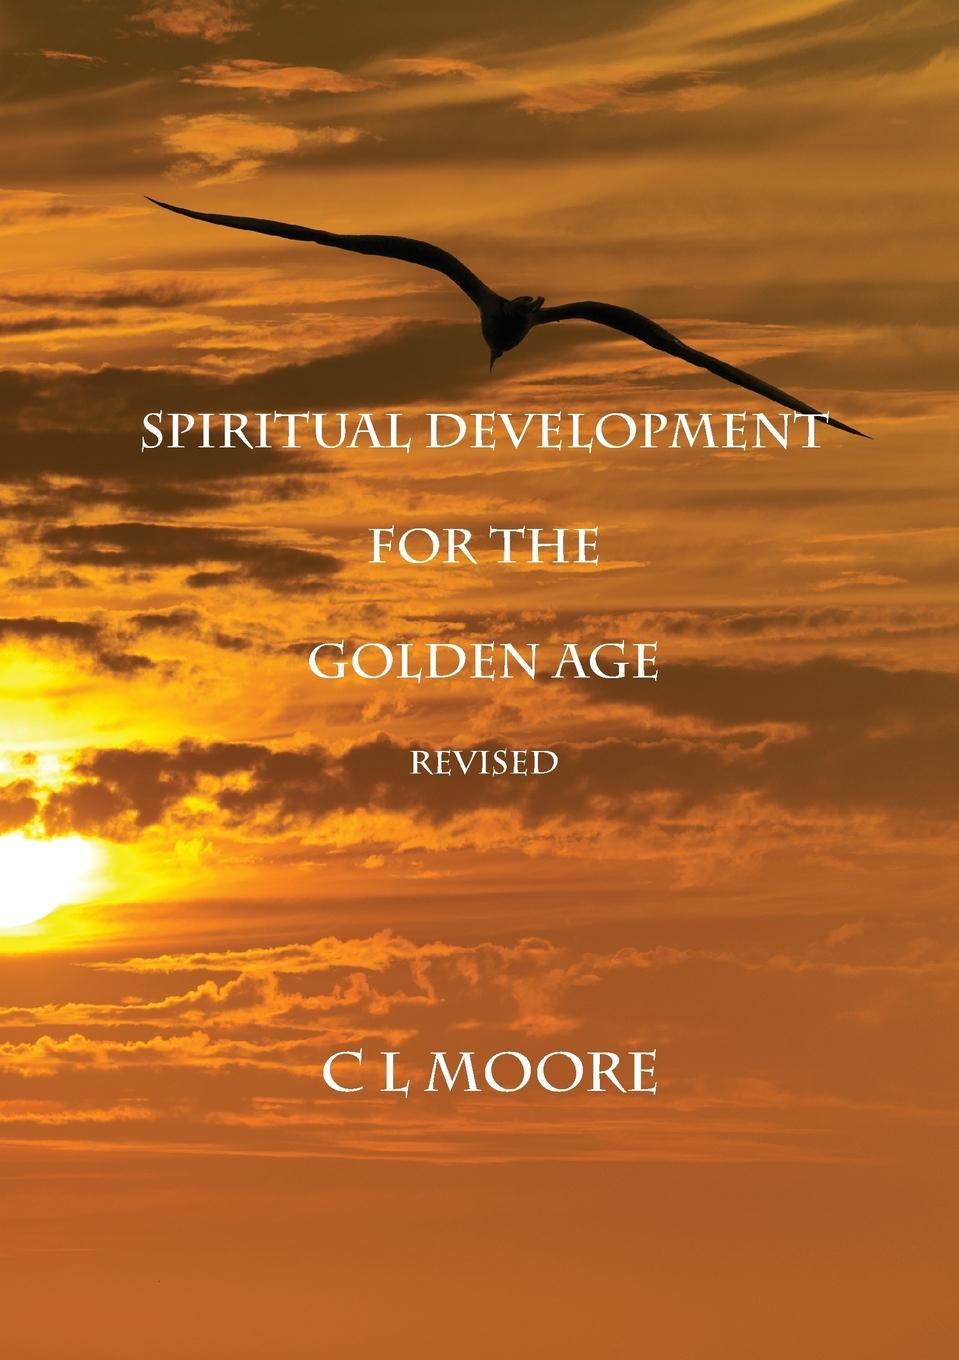 C L Moore Spiritual Development for the Golden Age - REVISED socialism for a skeptical age